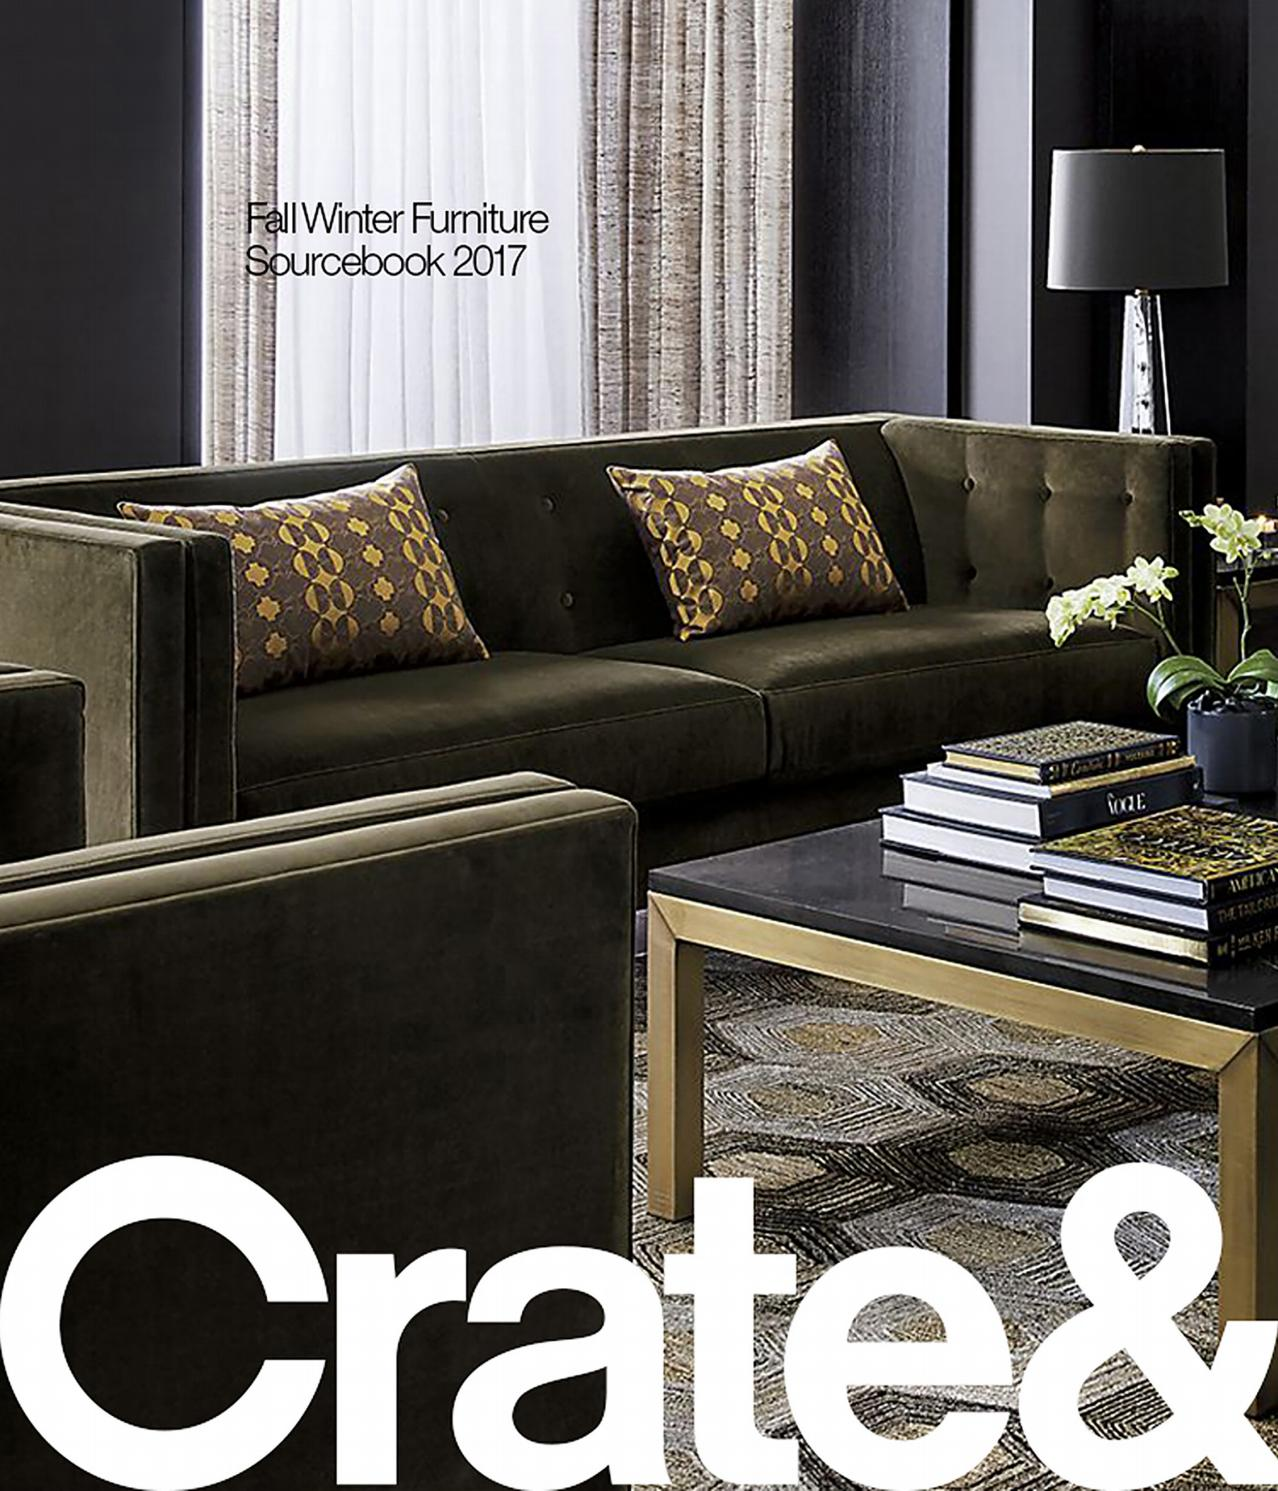 Crate and barrel singapore frg fw 2017 by crate and barrel singapore issuu